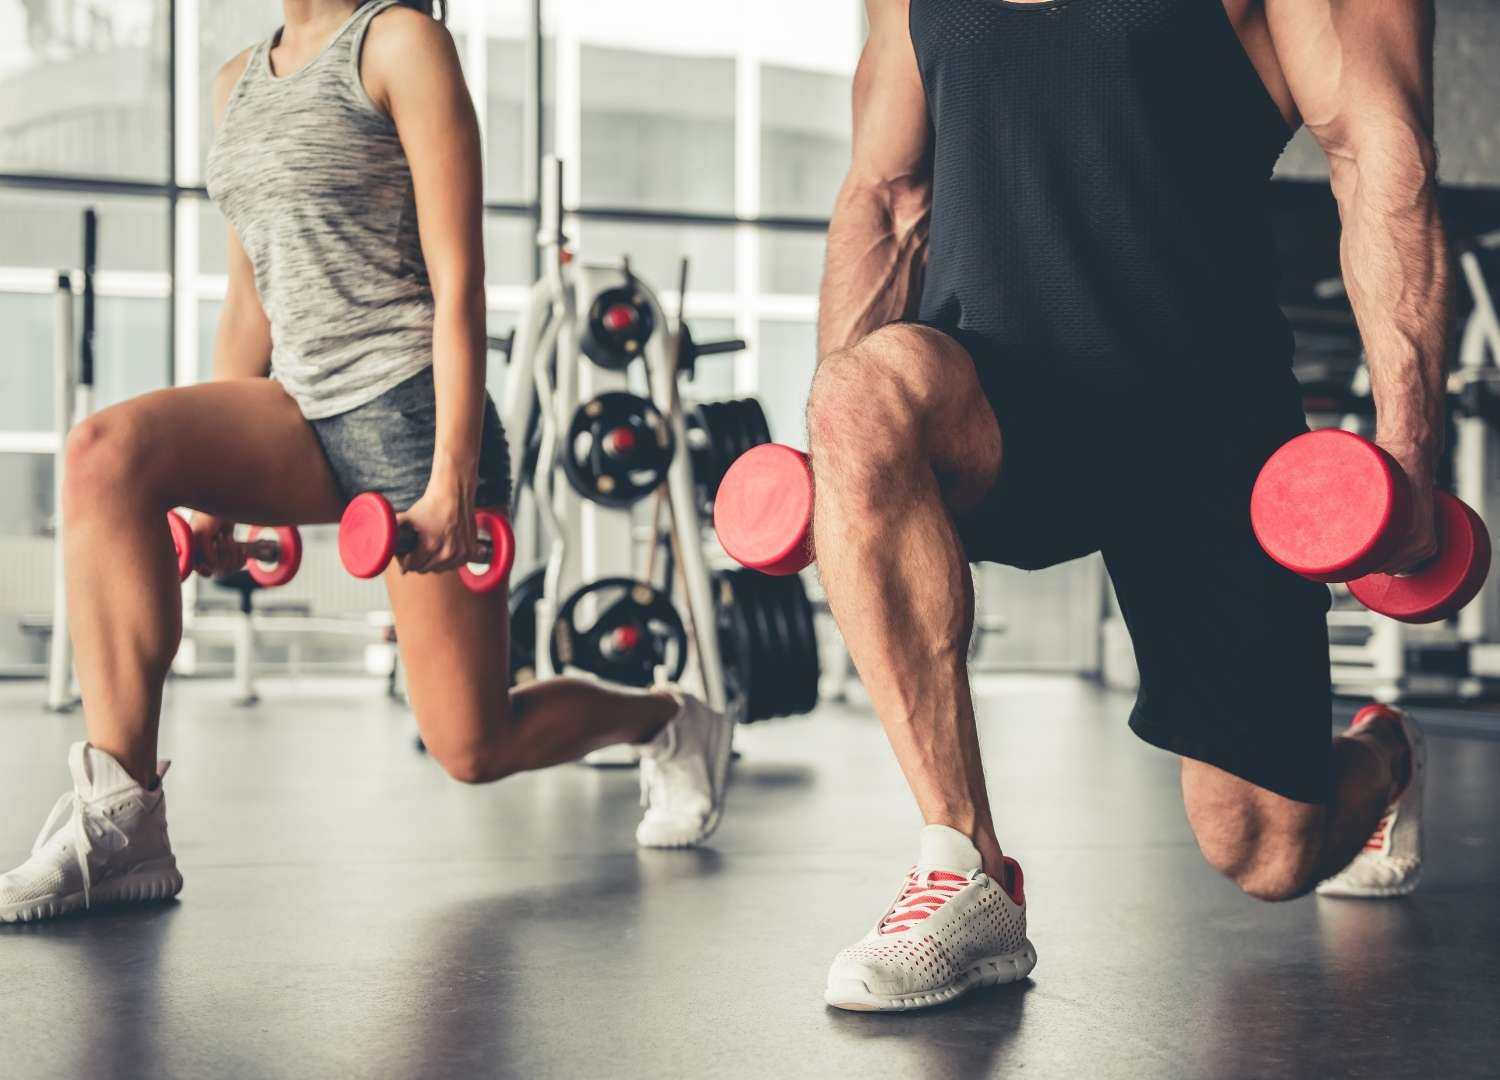 Two persons lifting dumbbells